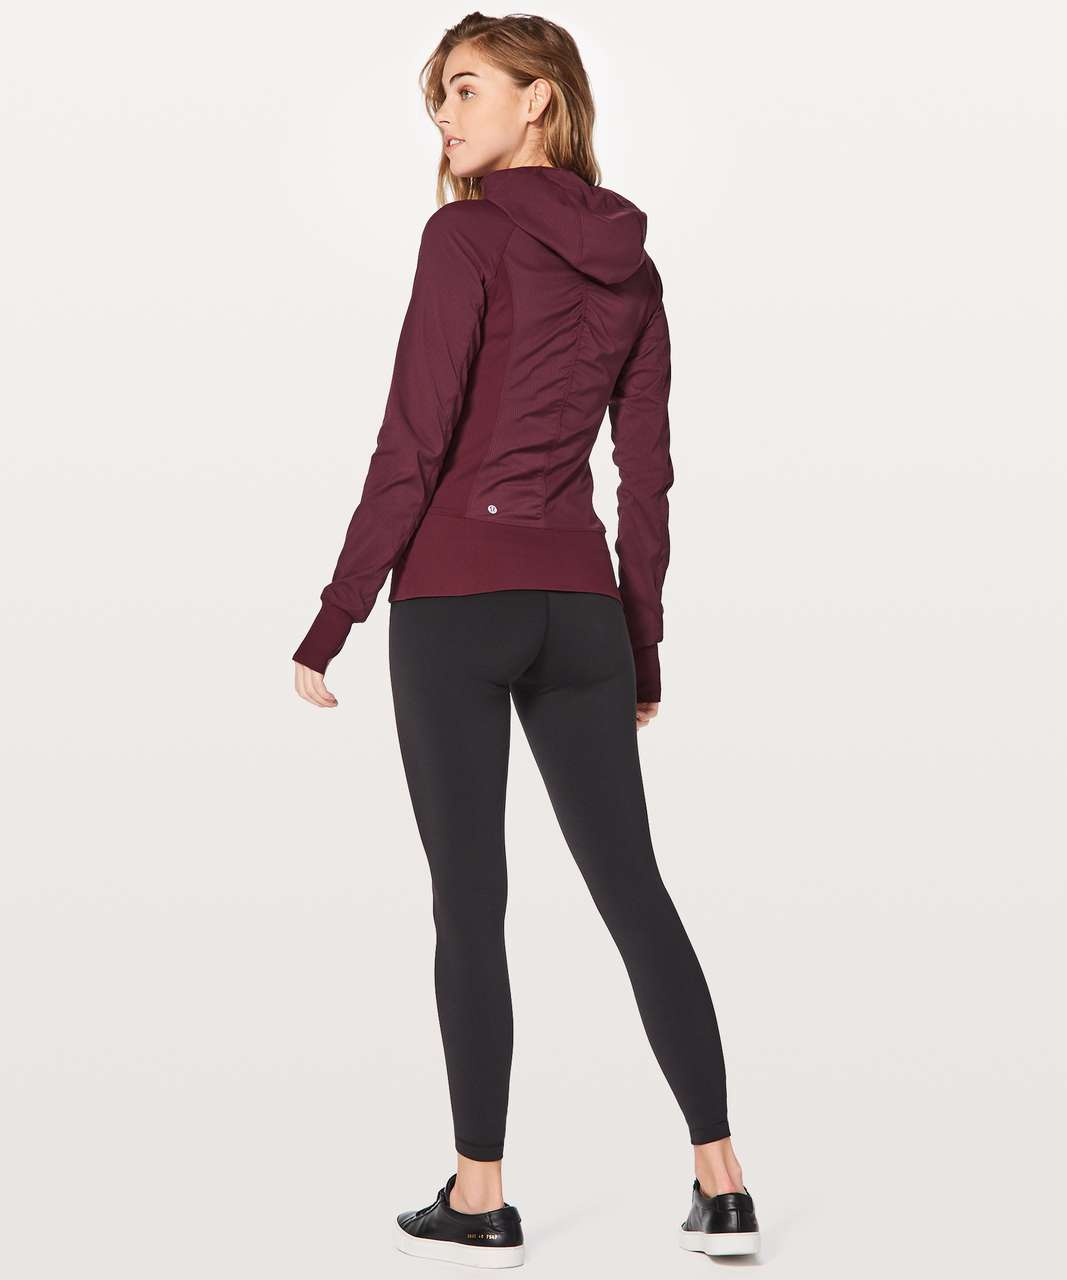 Lululemon In Flux Jacket - Plum